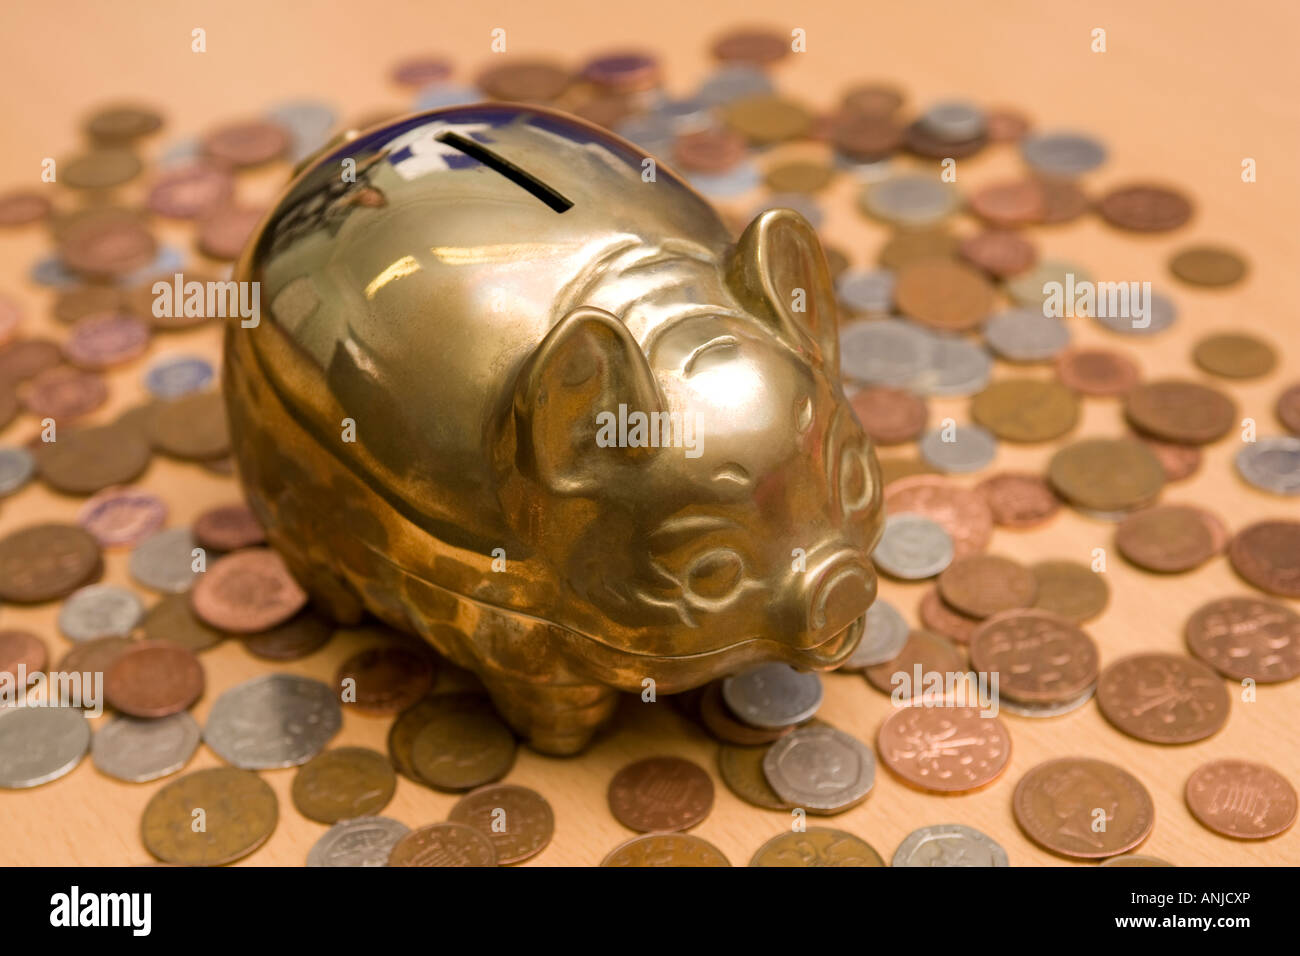 finance savings coins with brass piggy bank - Stock Image